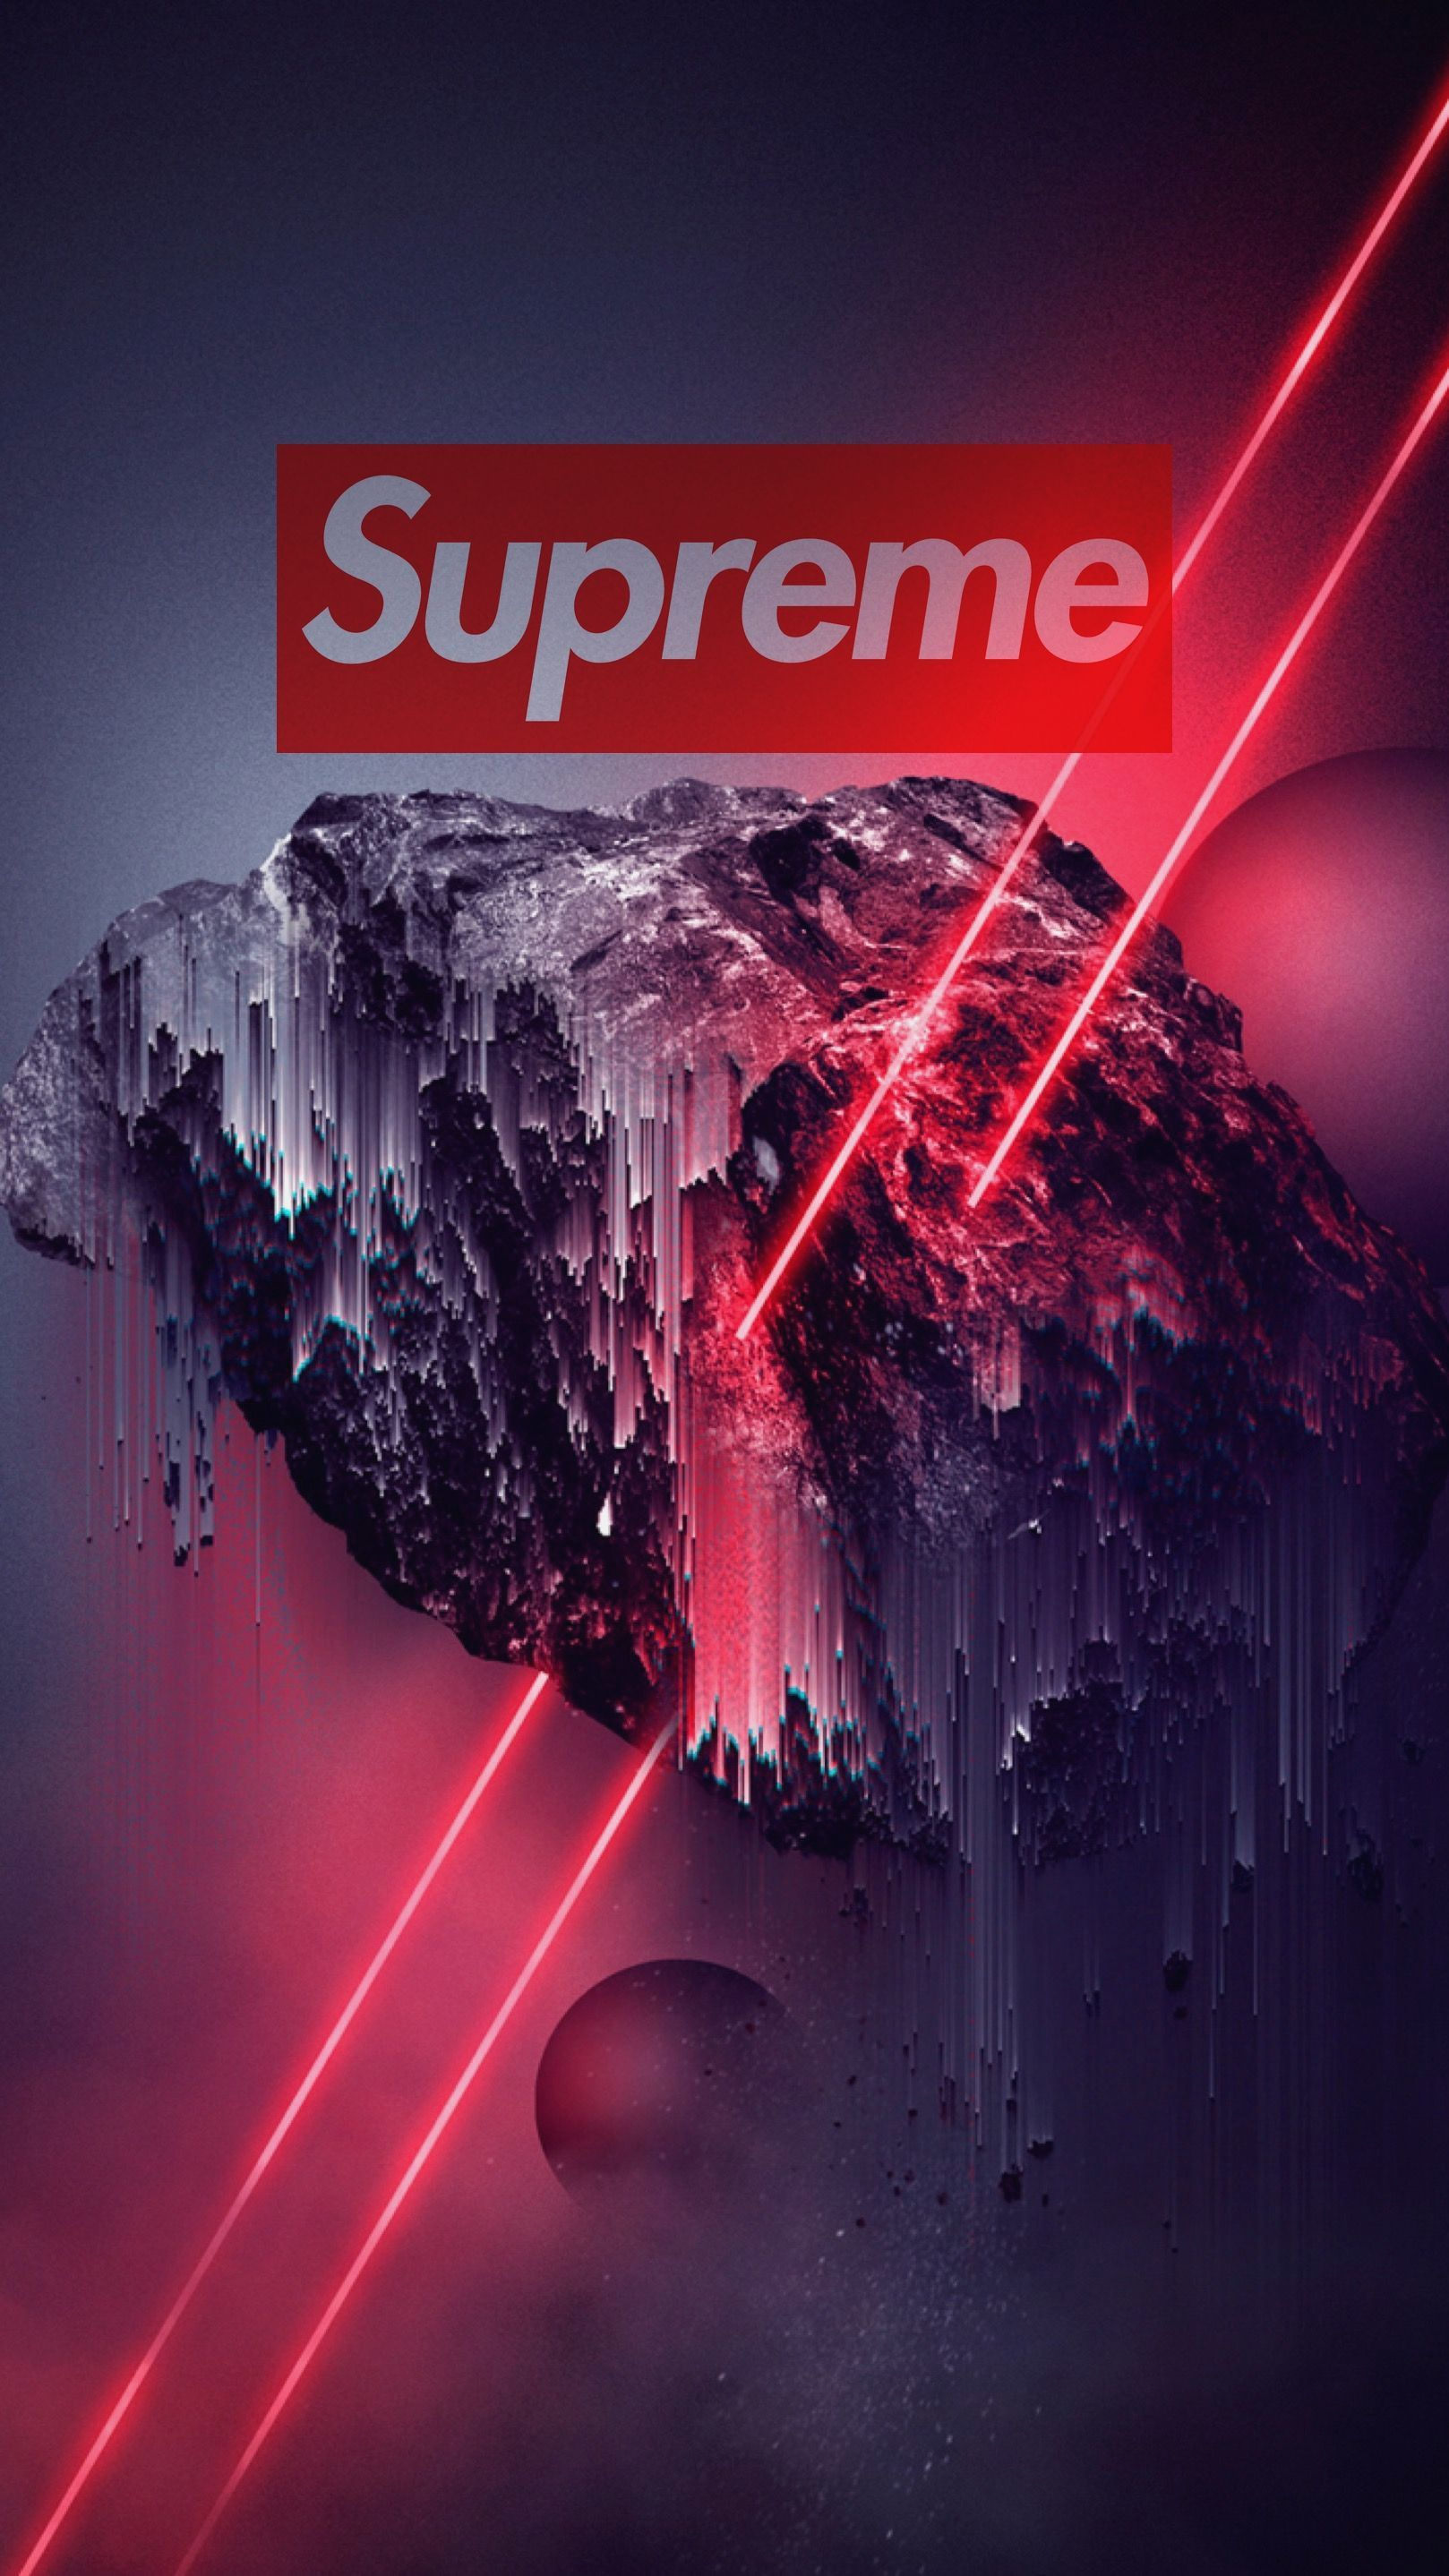 Pin by Justin Ward on Supreme iphone wallpaper in 2020